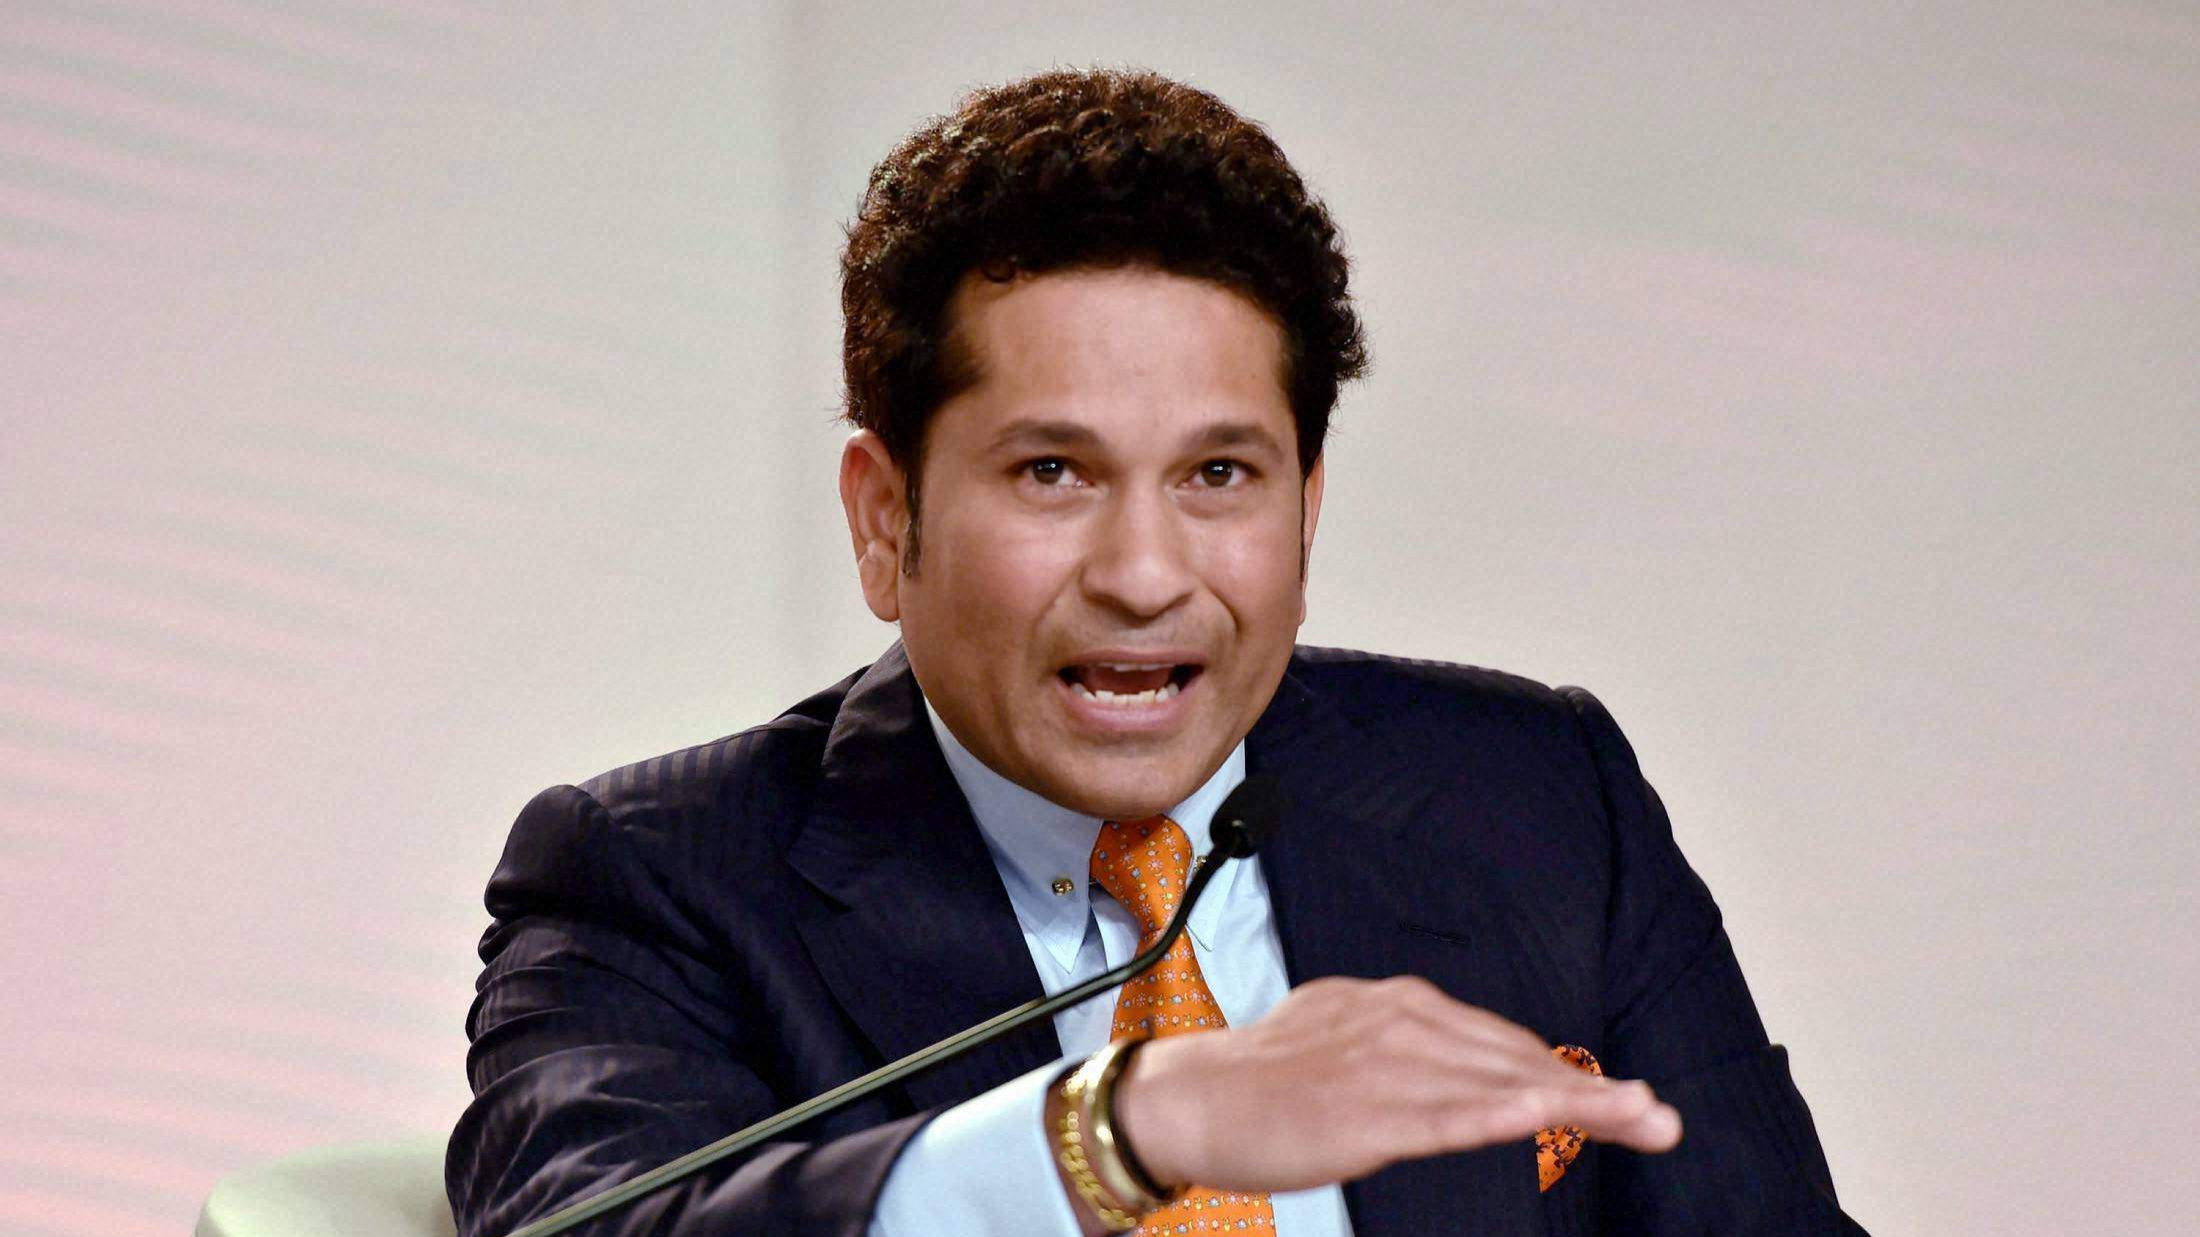 Cricket needs a balance between bat and ball, says Sachin Tendulkar